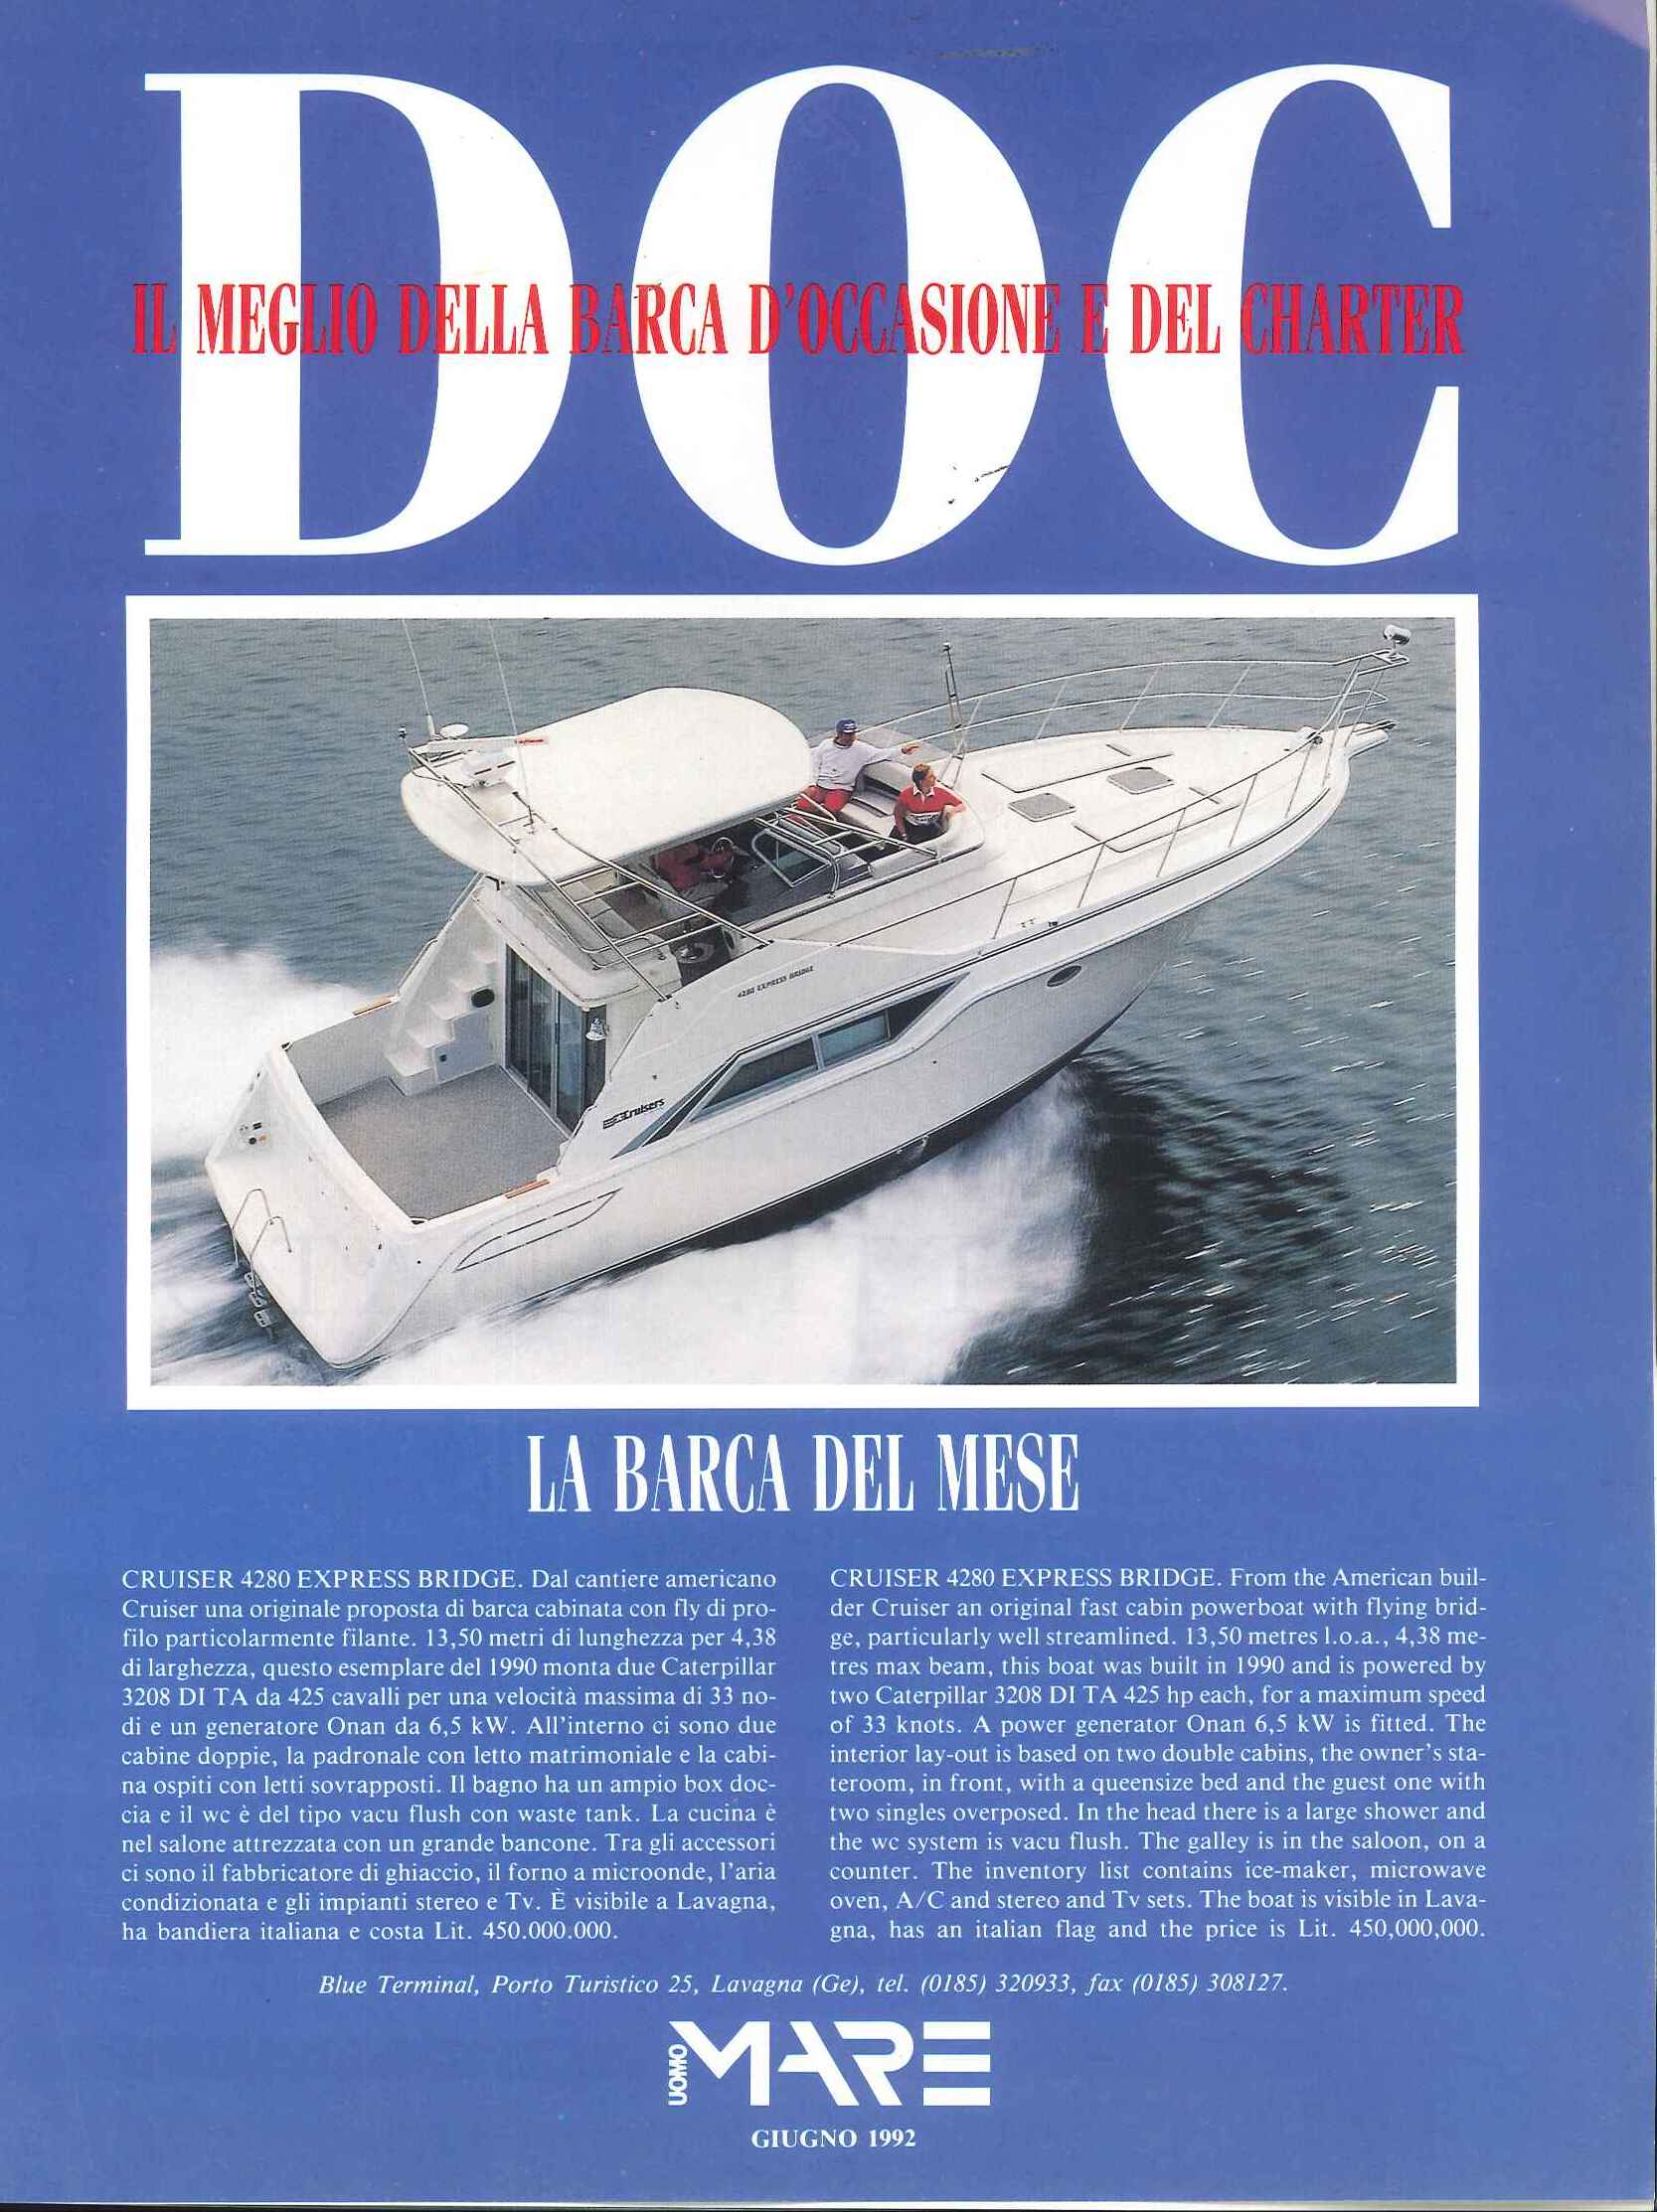 1992 06 ADV CRUISER 4280 EXPRESS BRIDGE Uomo Mare n°161 (22).jpg